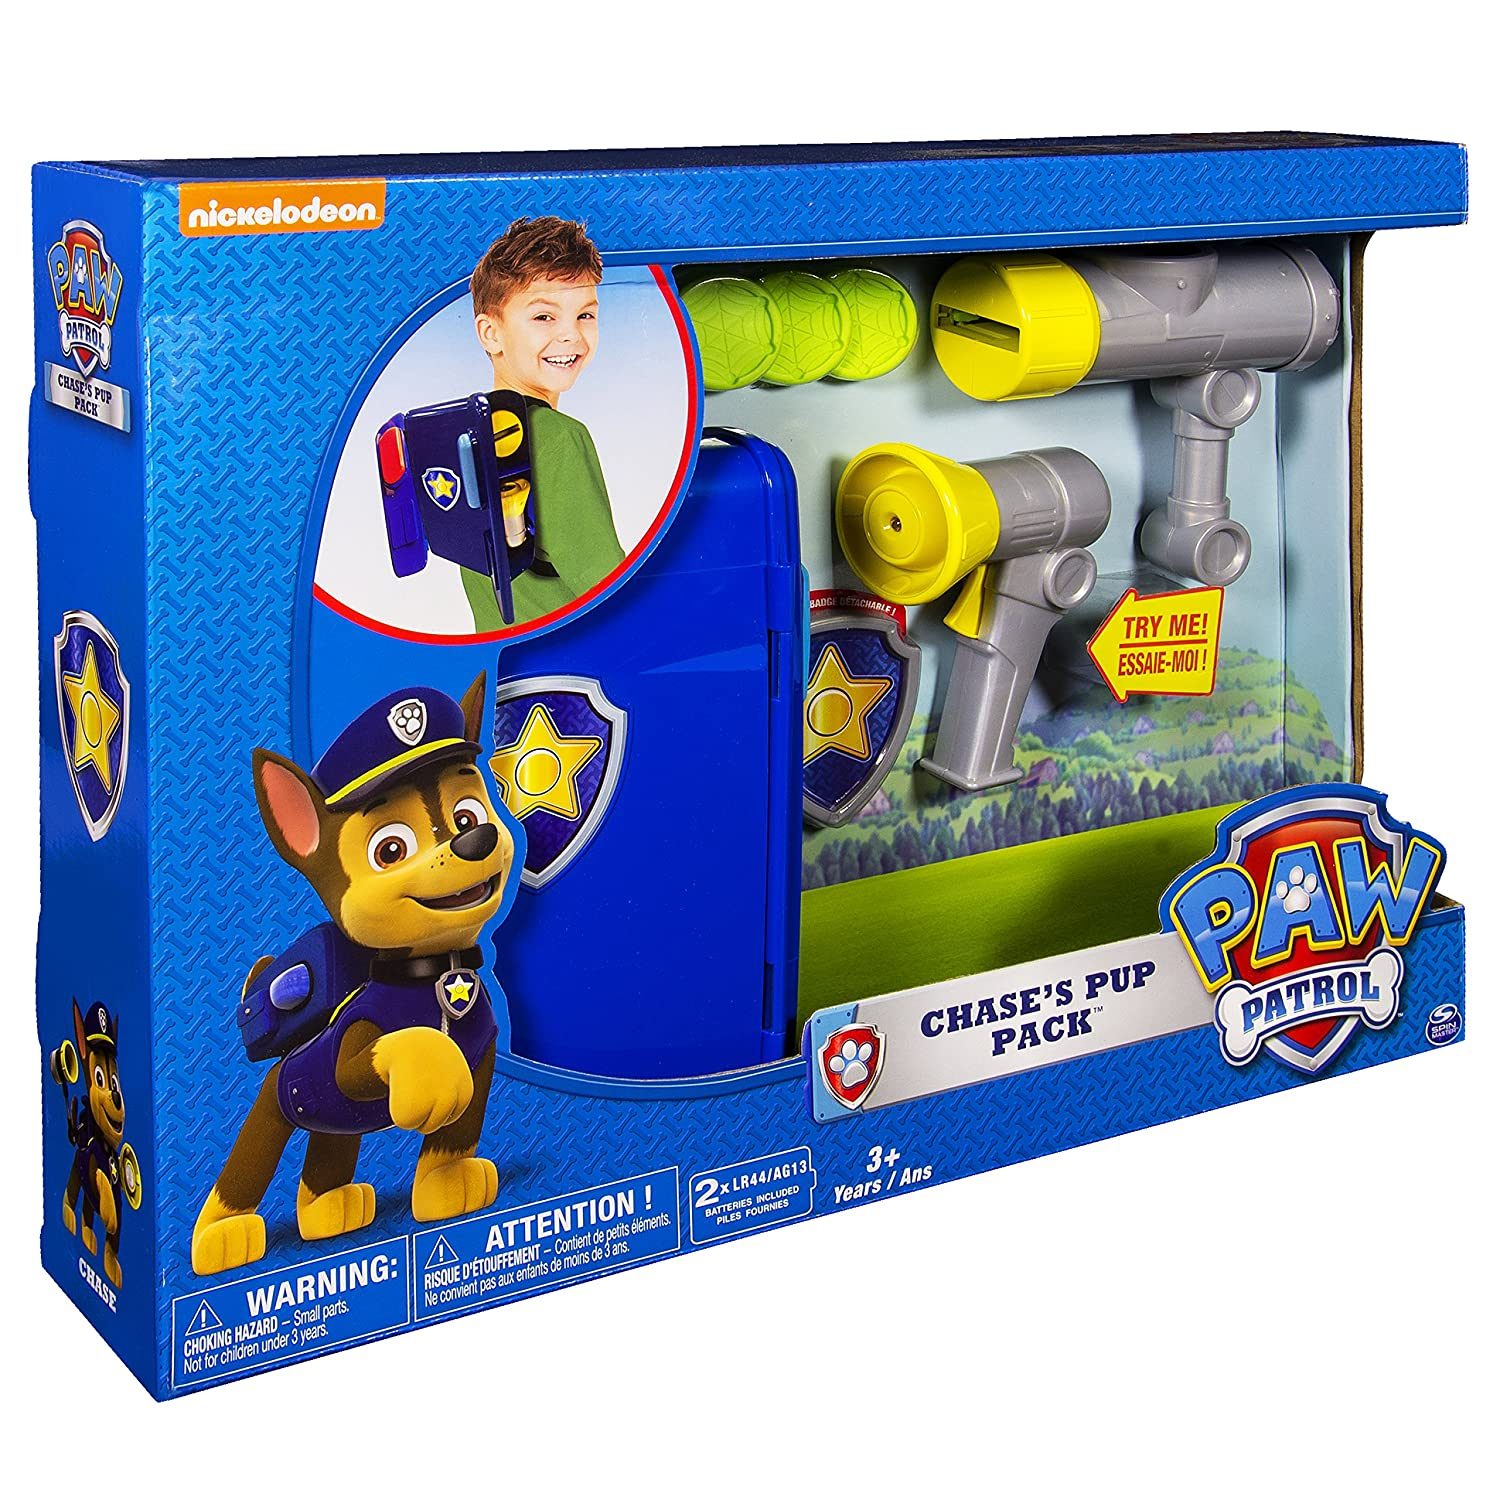 Paw Patrol Chases Pup Pack Spin Master 20070091